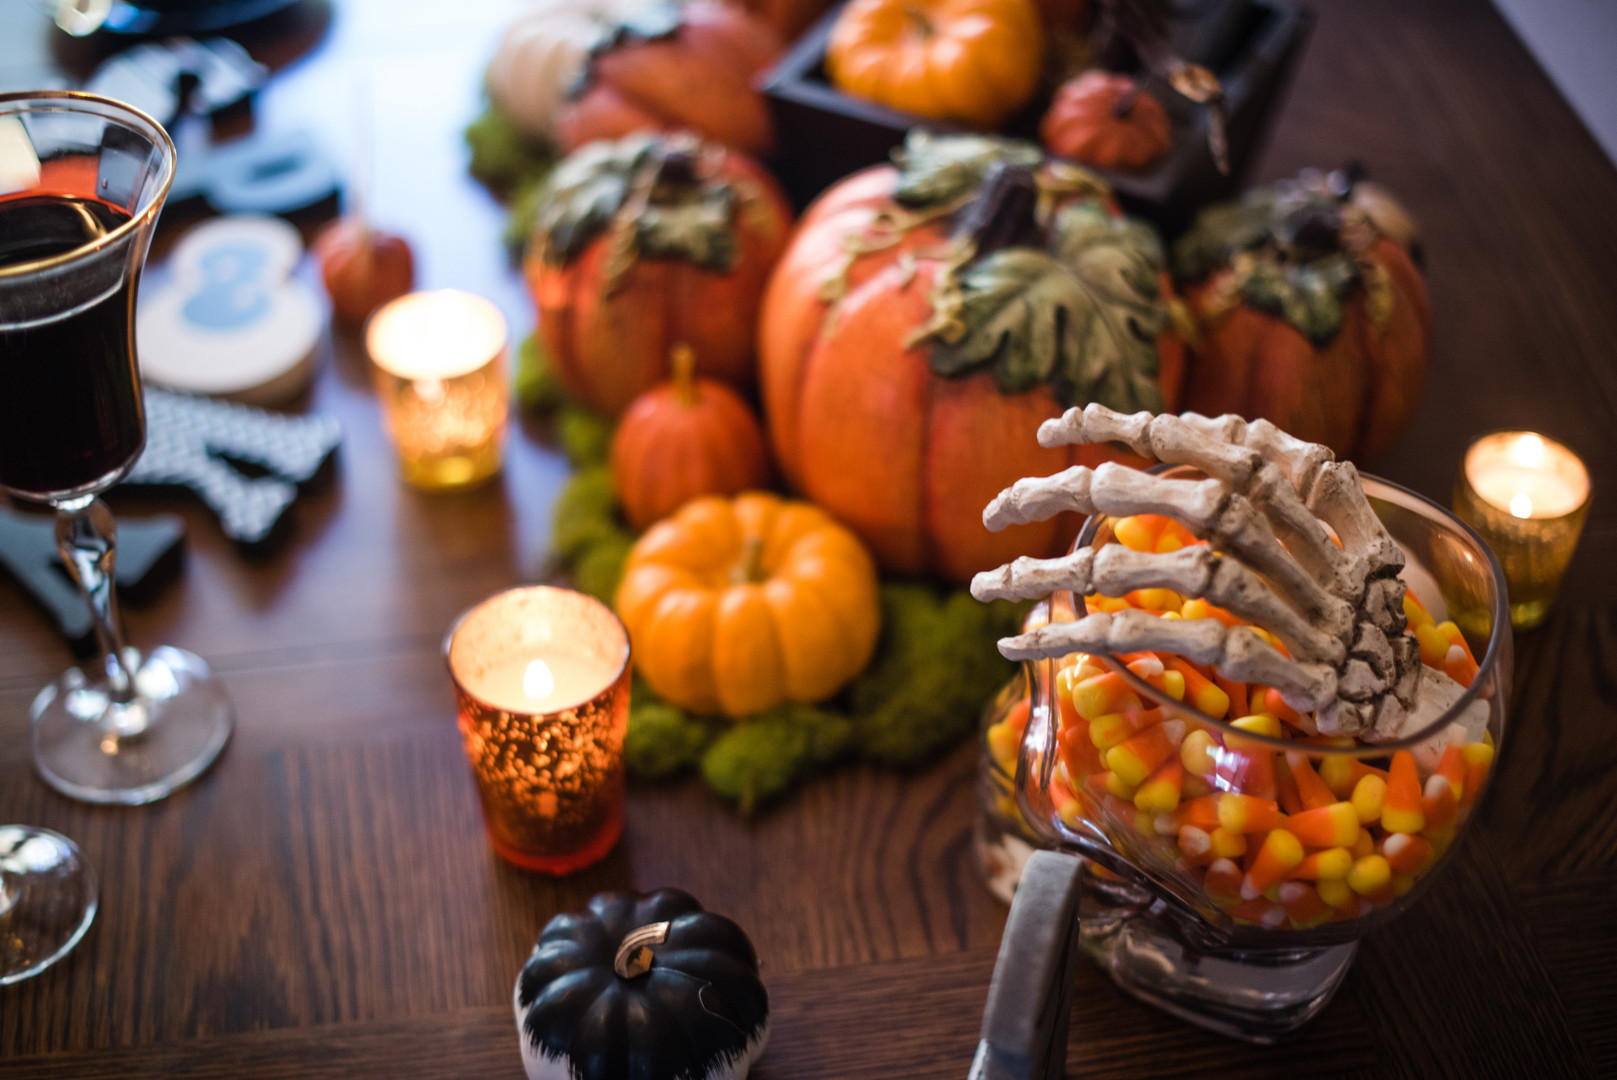 candy corn in a skeleton jar with pumpkins on a table